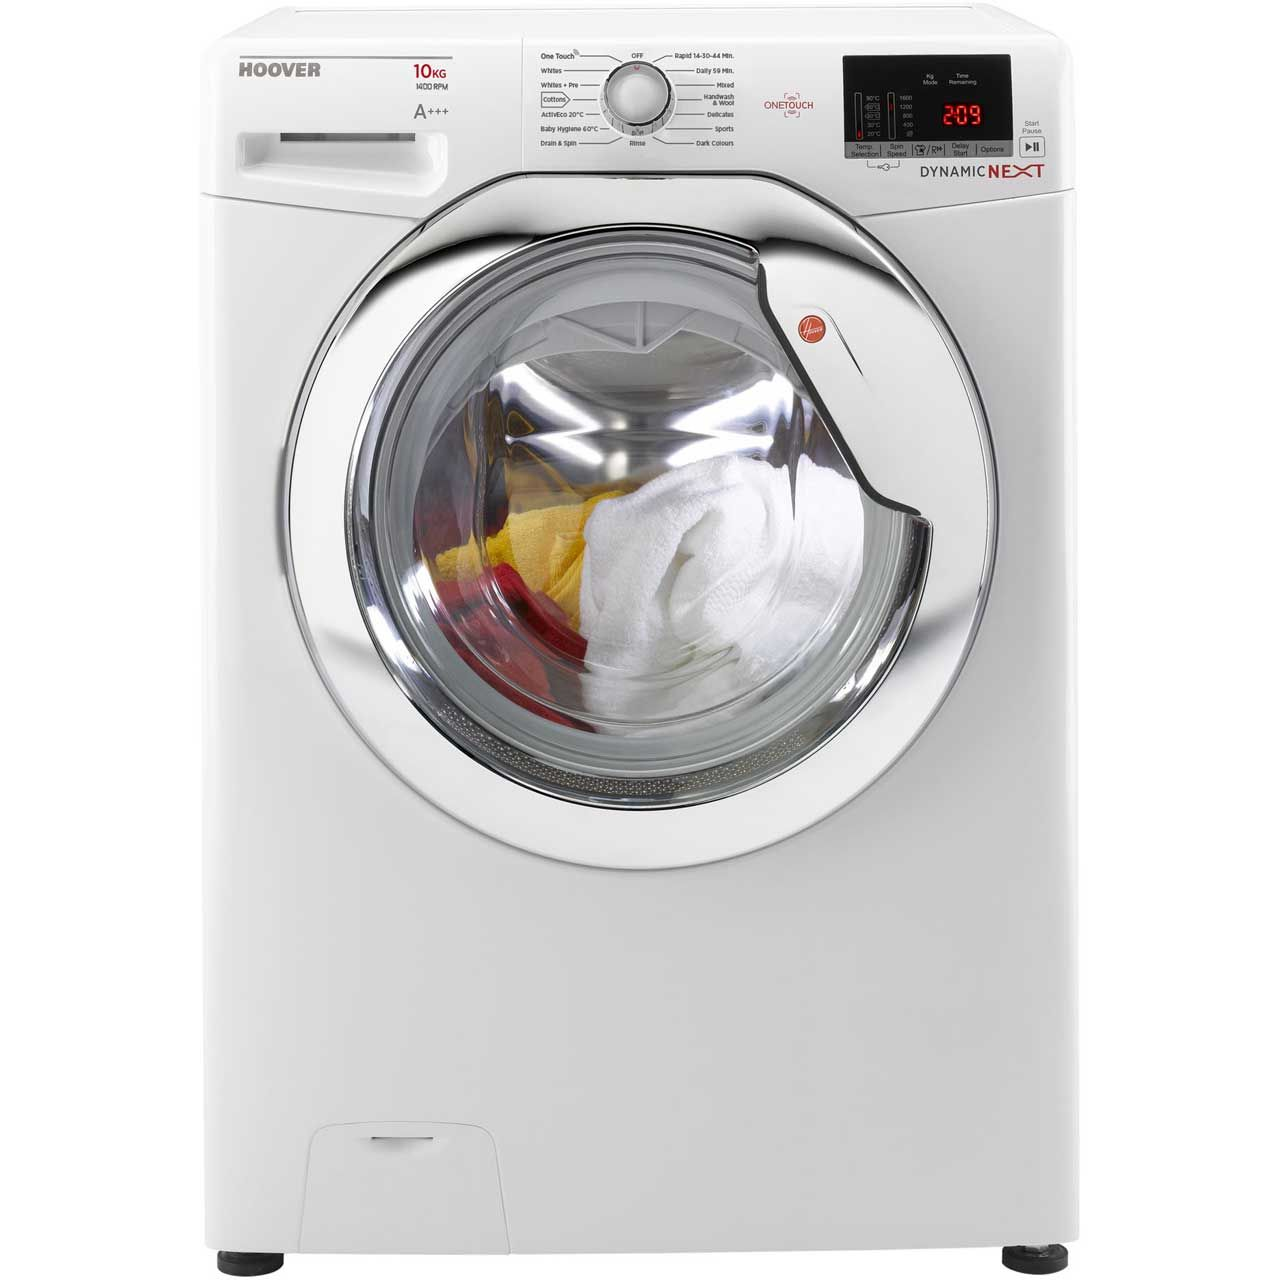 Dxoc410c3 Wh Hoover Washing Machine 10kg White Ao Com Ideas For 2017 Washer Dryer Laundry Appliances